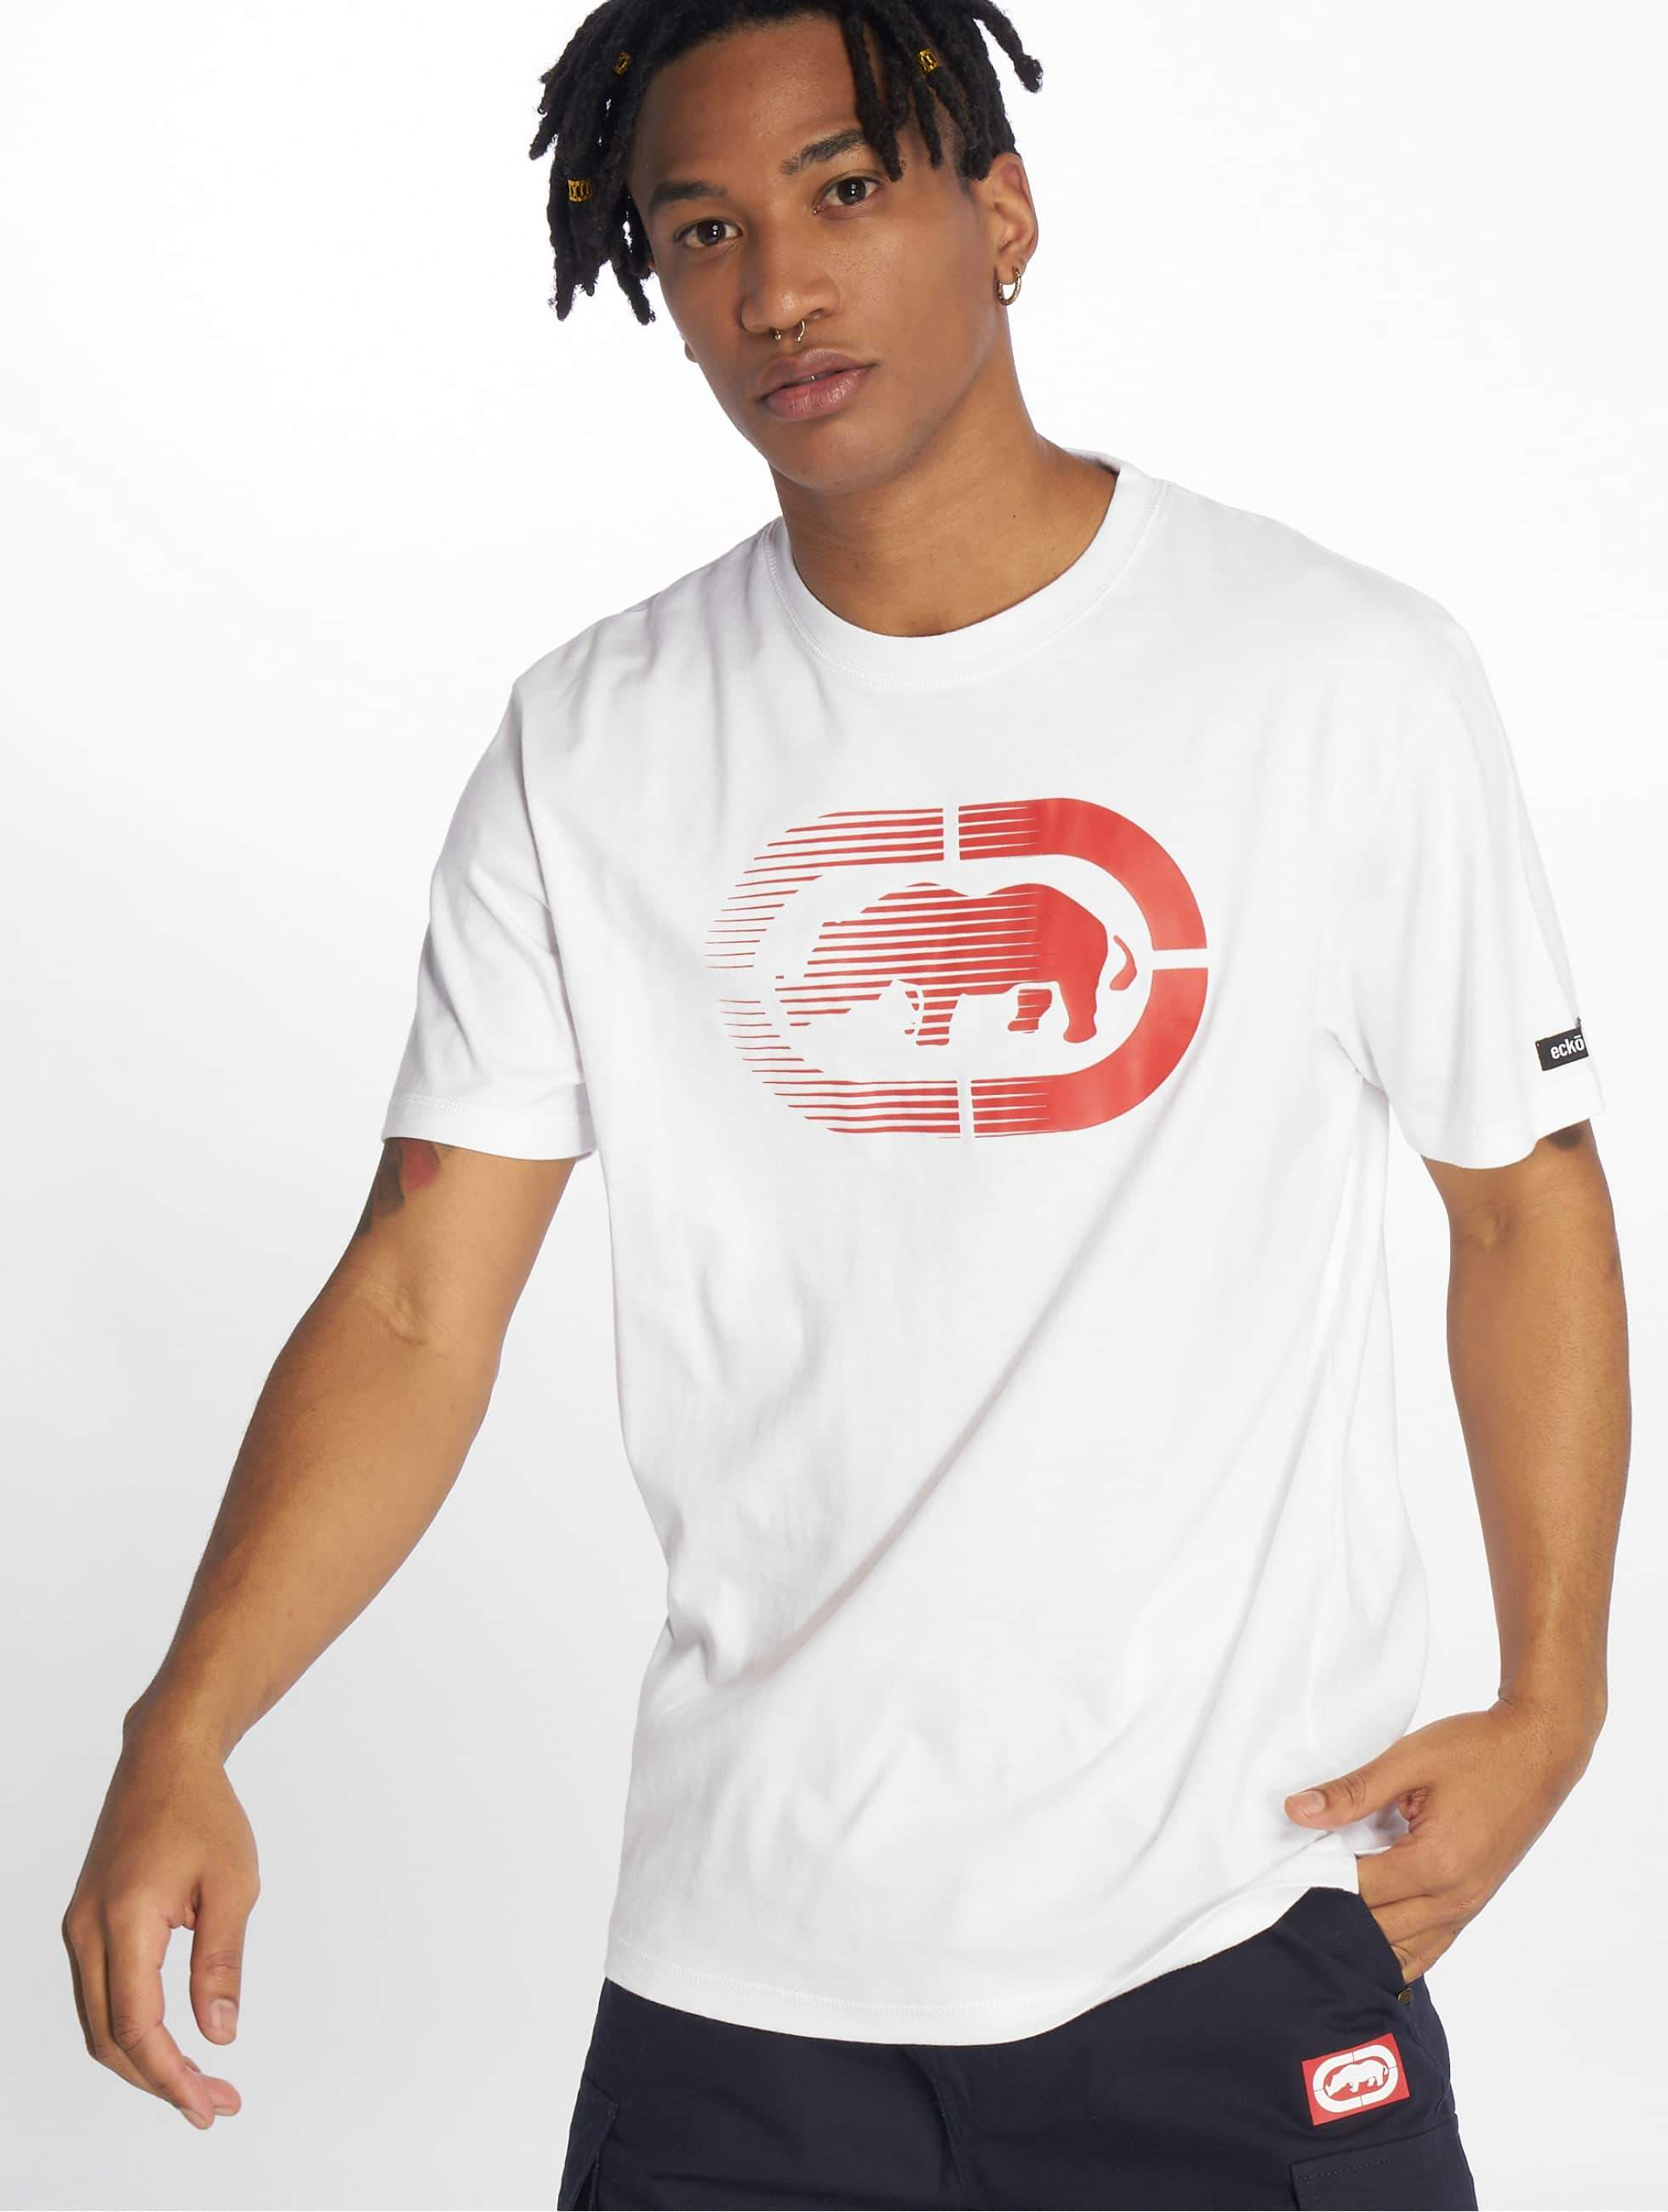 Ecko Unltd. / T-Shirt 5050 in white XL